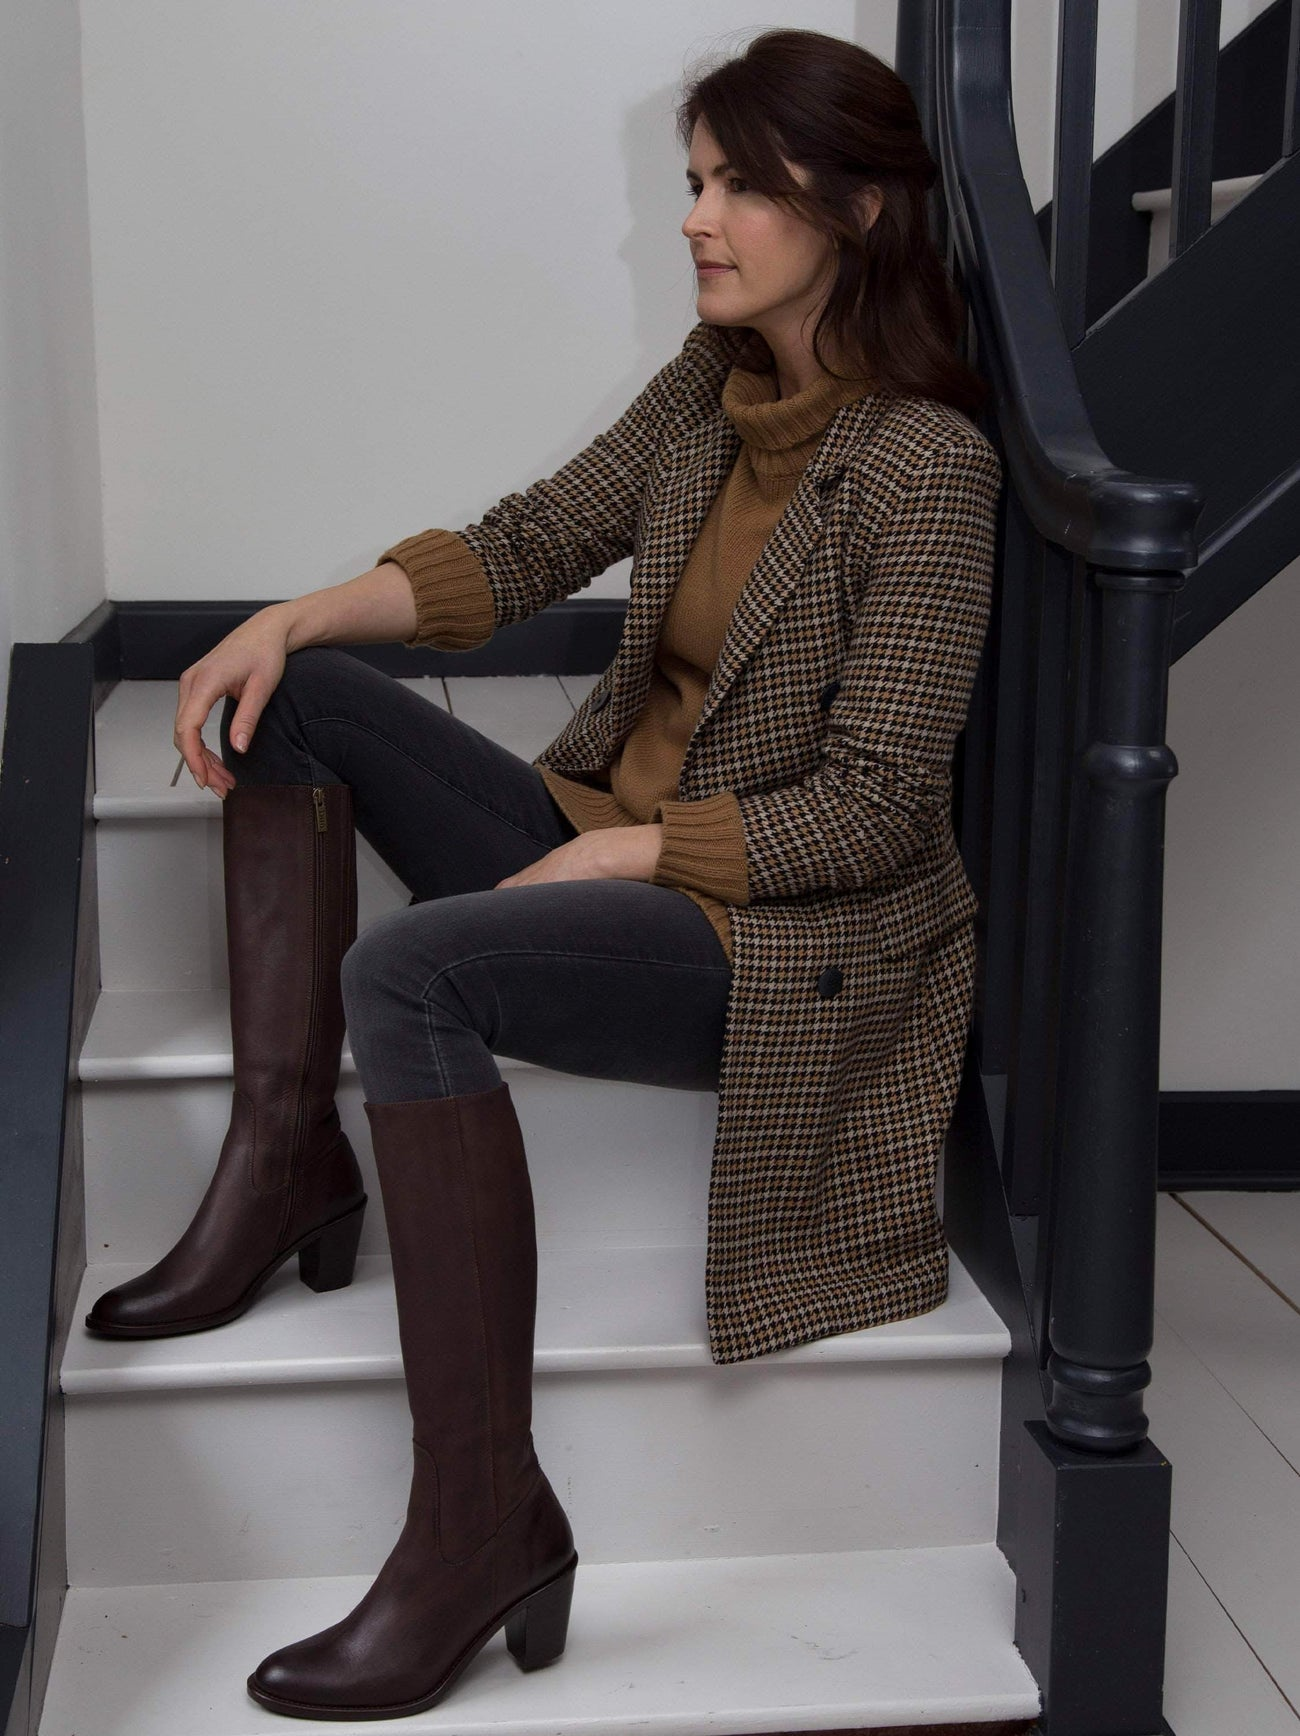 Feltham a classic, timeless, clean-cut brown nubuck leather knee high boot.